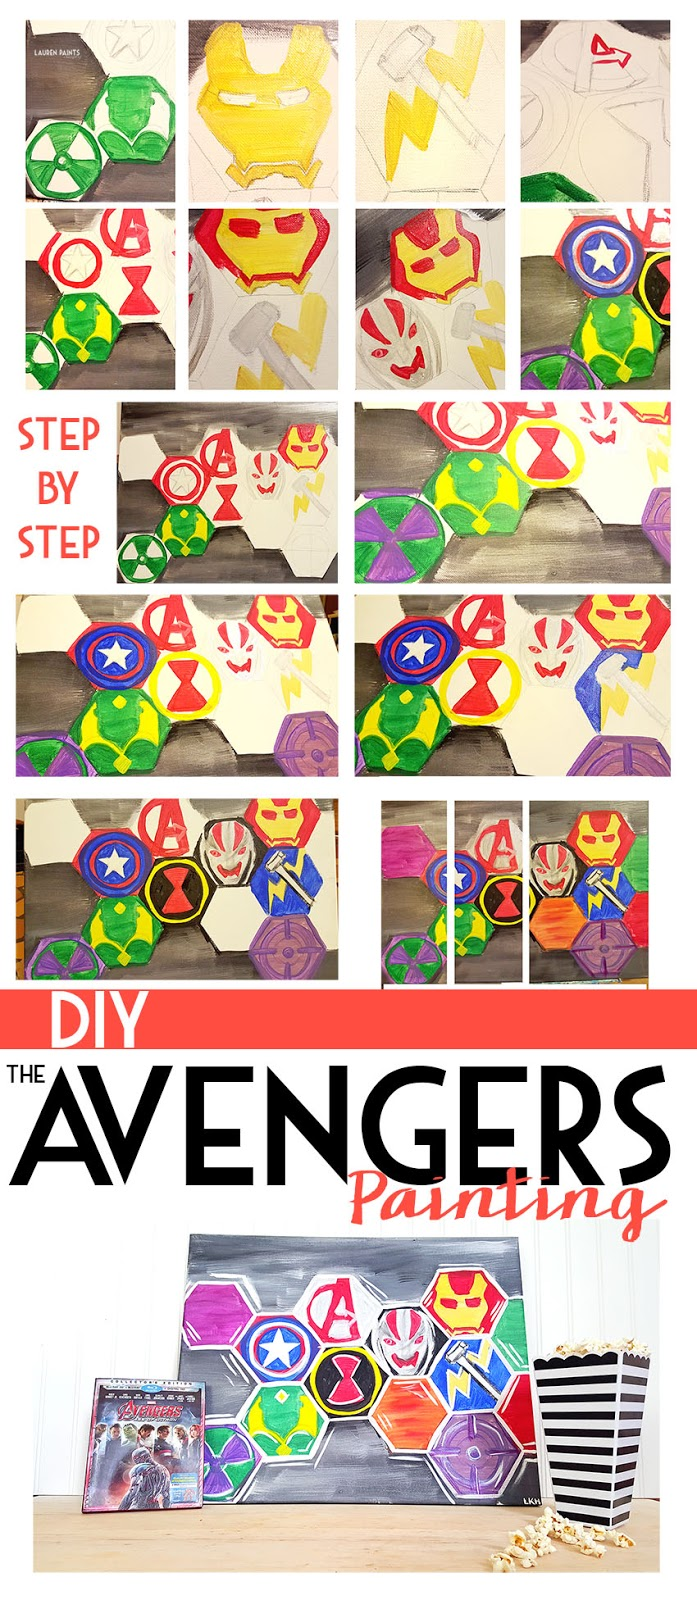 I was so inspired by MARVEL's The Avengers: Age of Ultron that I decided to share an awesome DIY Painting! Want to make one for your home? Follow the tutorial! http://cbi.as/7afs